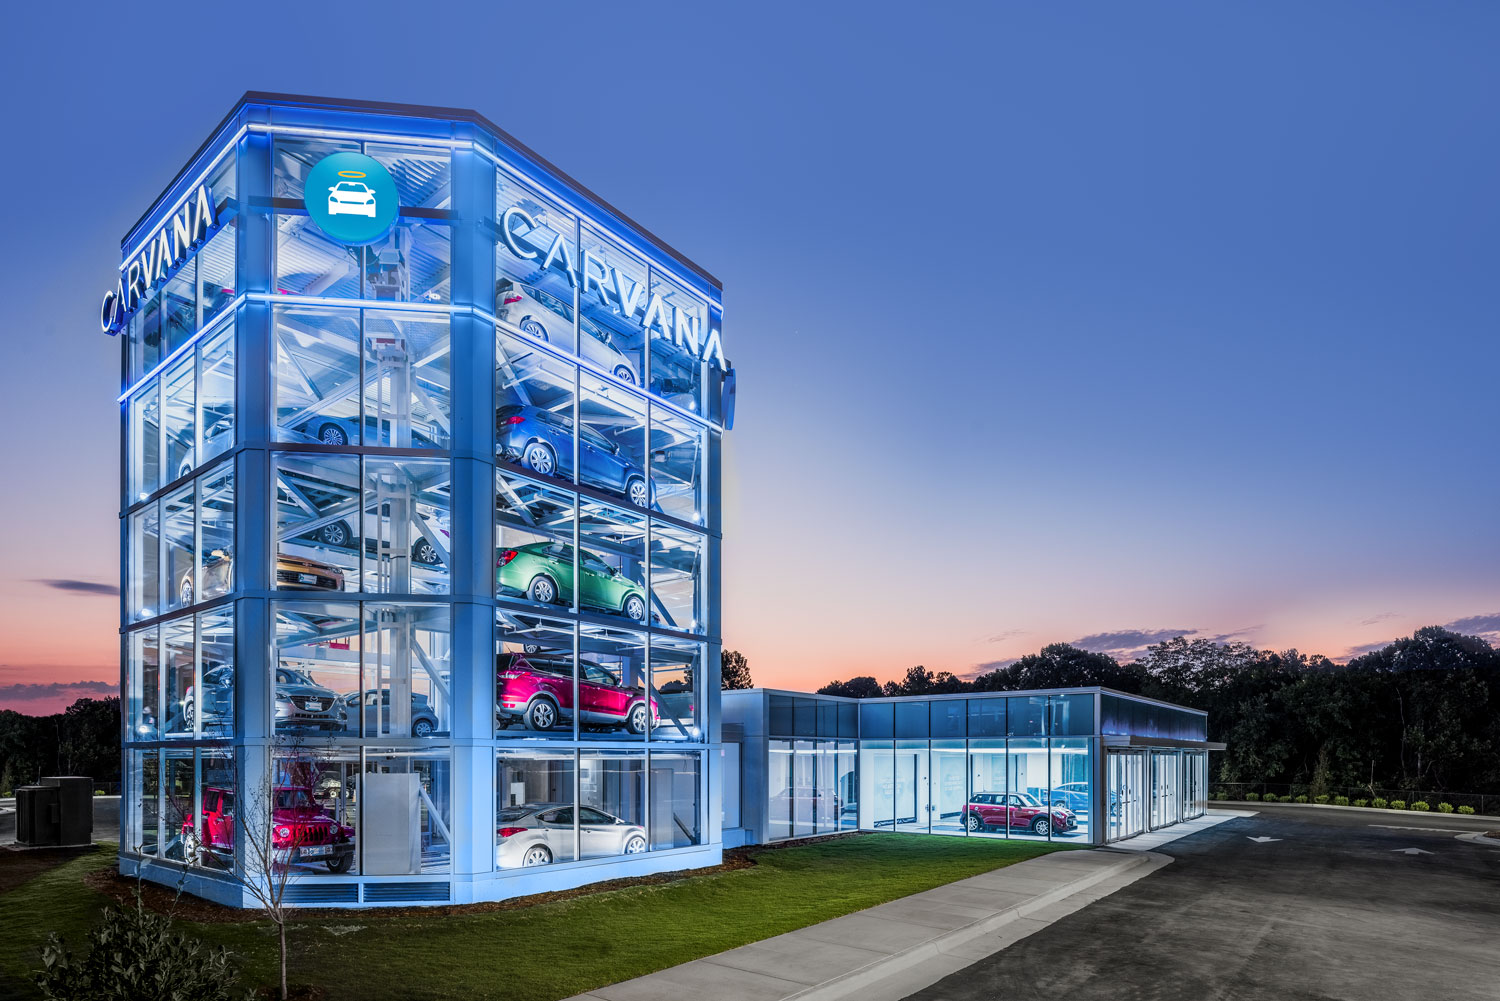 CARVANA, car vending machine, Raleigh, NC © harlan erskine.